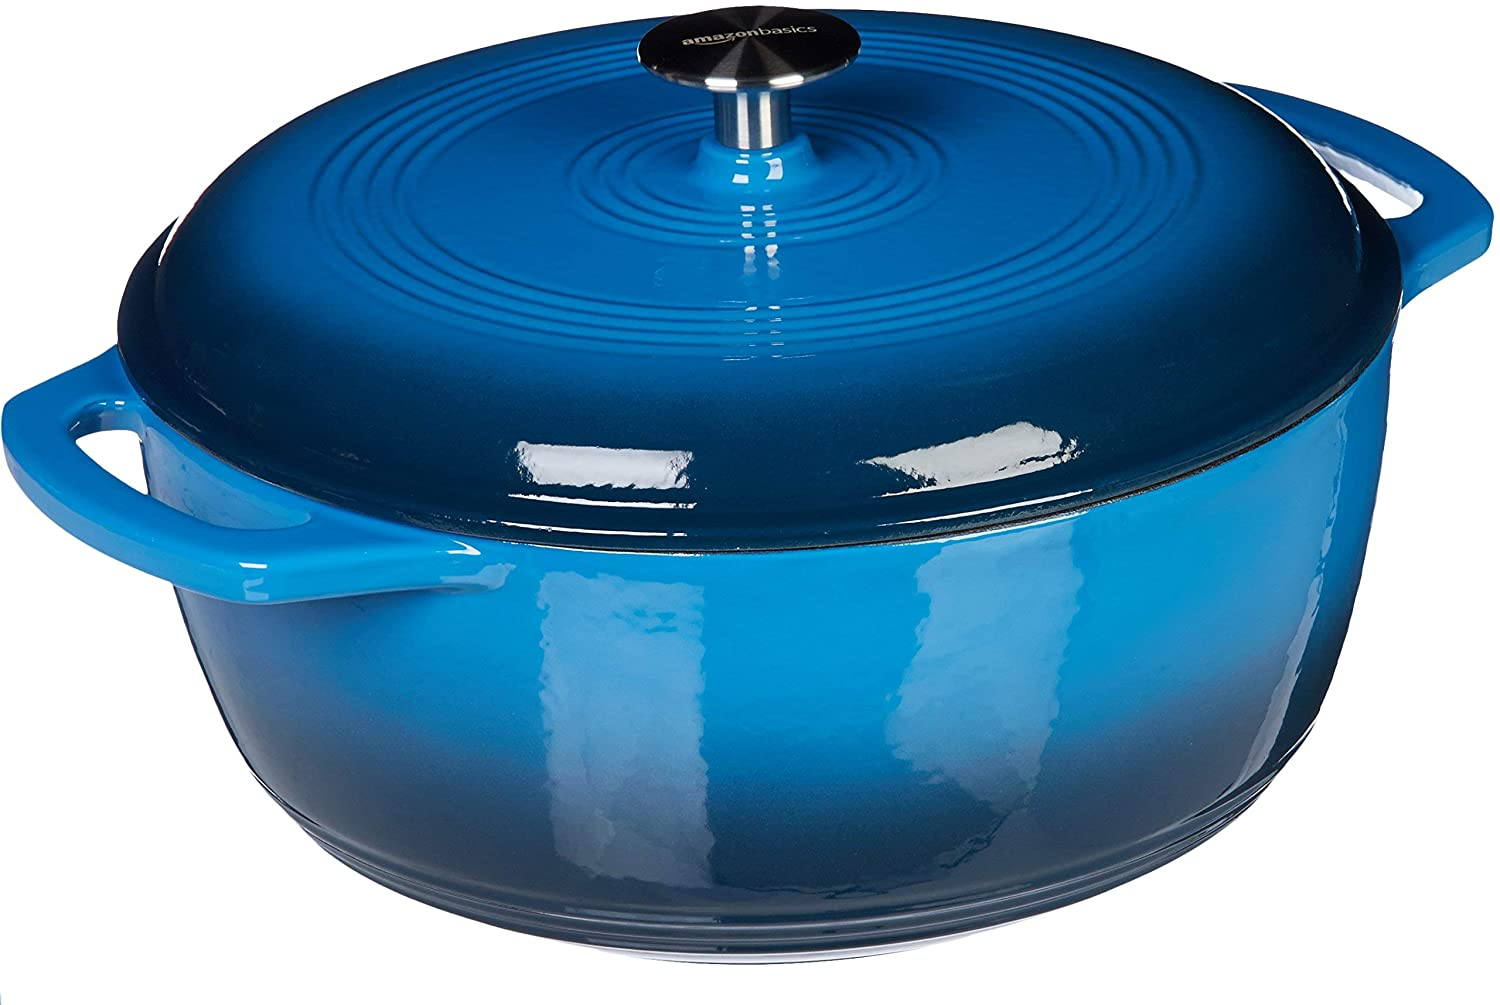 AmazonBasics Enameled Cast Iron Dutch Oven - 6-Quart, Blue (Renewed)